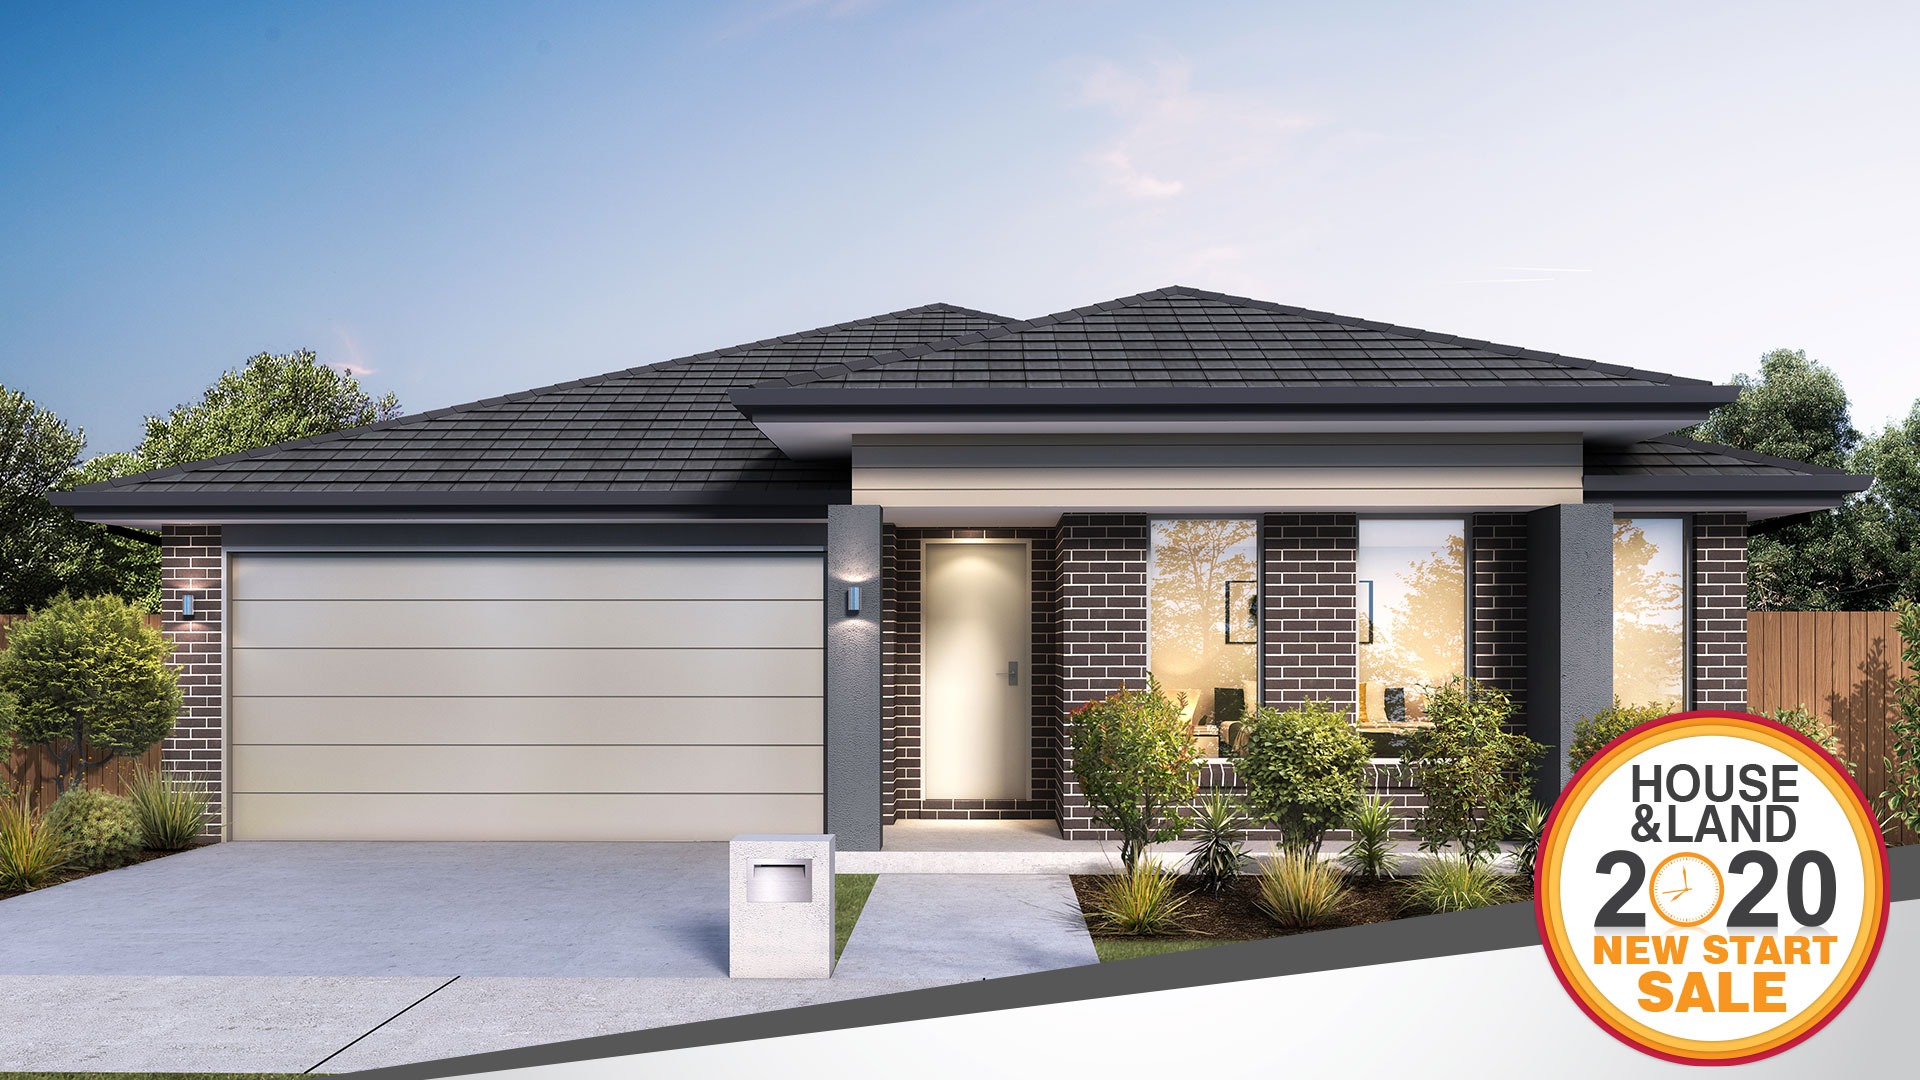 400 House Land New Start Sale WebsiteImages SpringFarm506